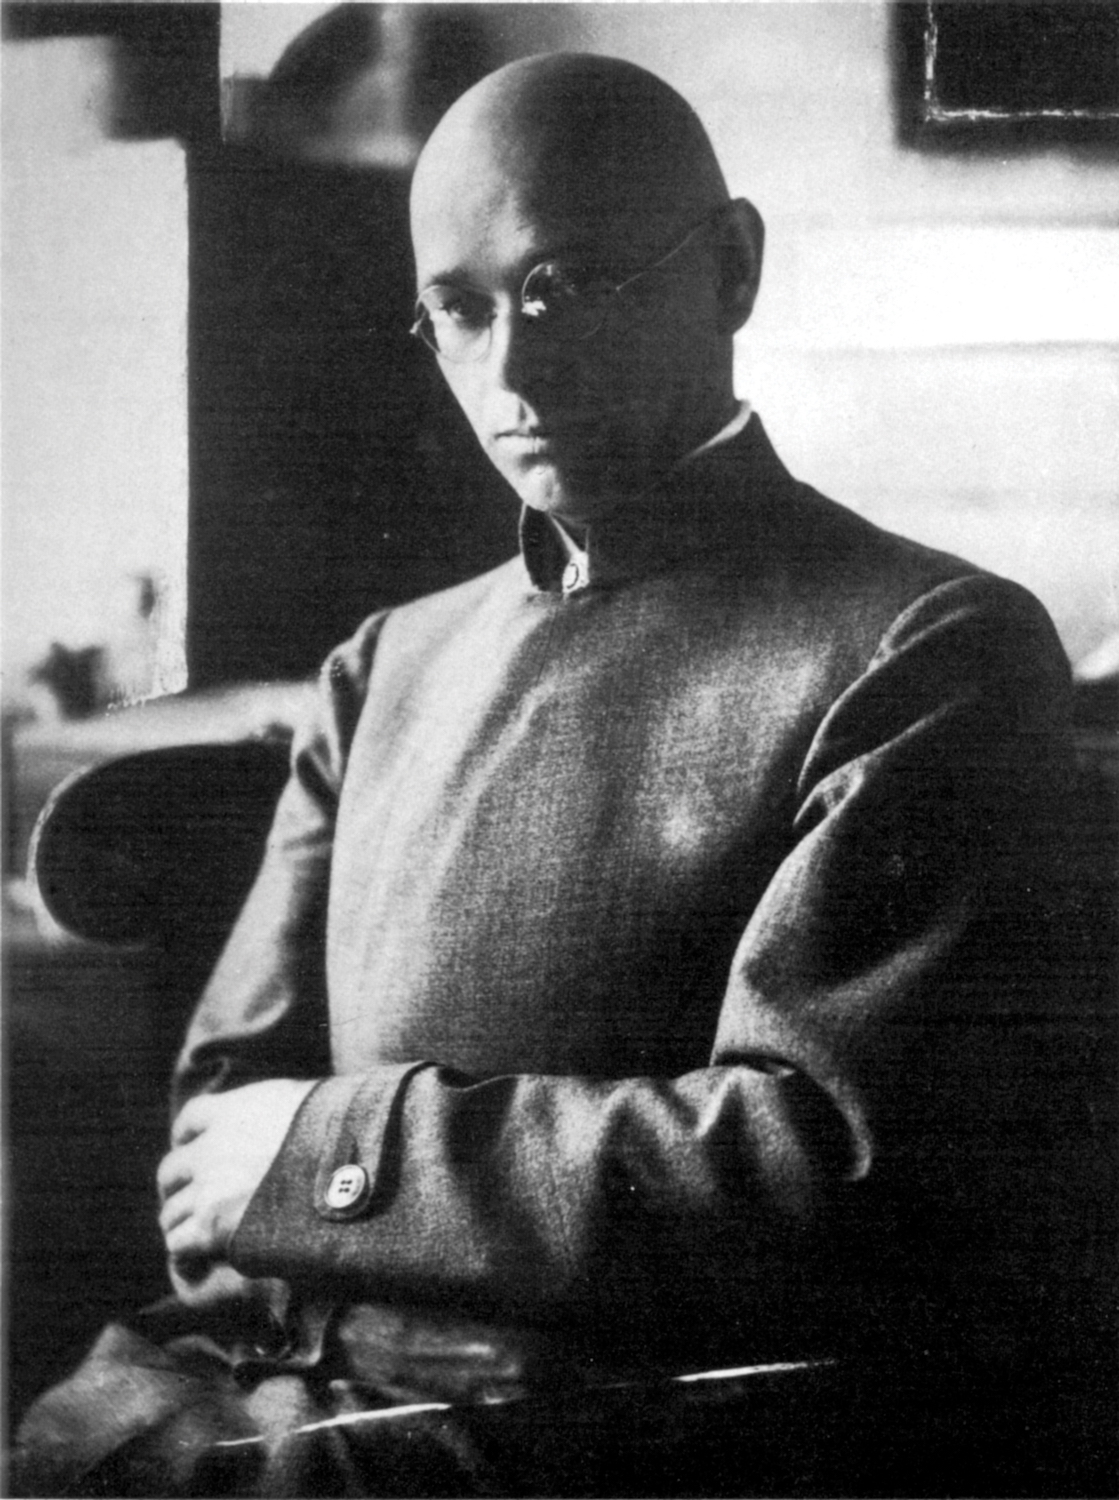 Johannes Itten (in 1921), the first instructor of the basic course at the Bauhaus: During Itten's tenure, the student body also tended to shave their heads and wear robes.